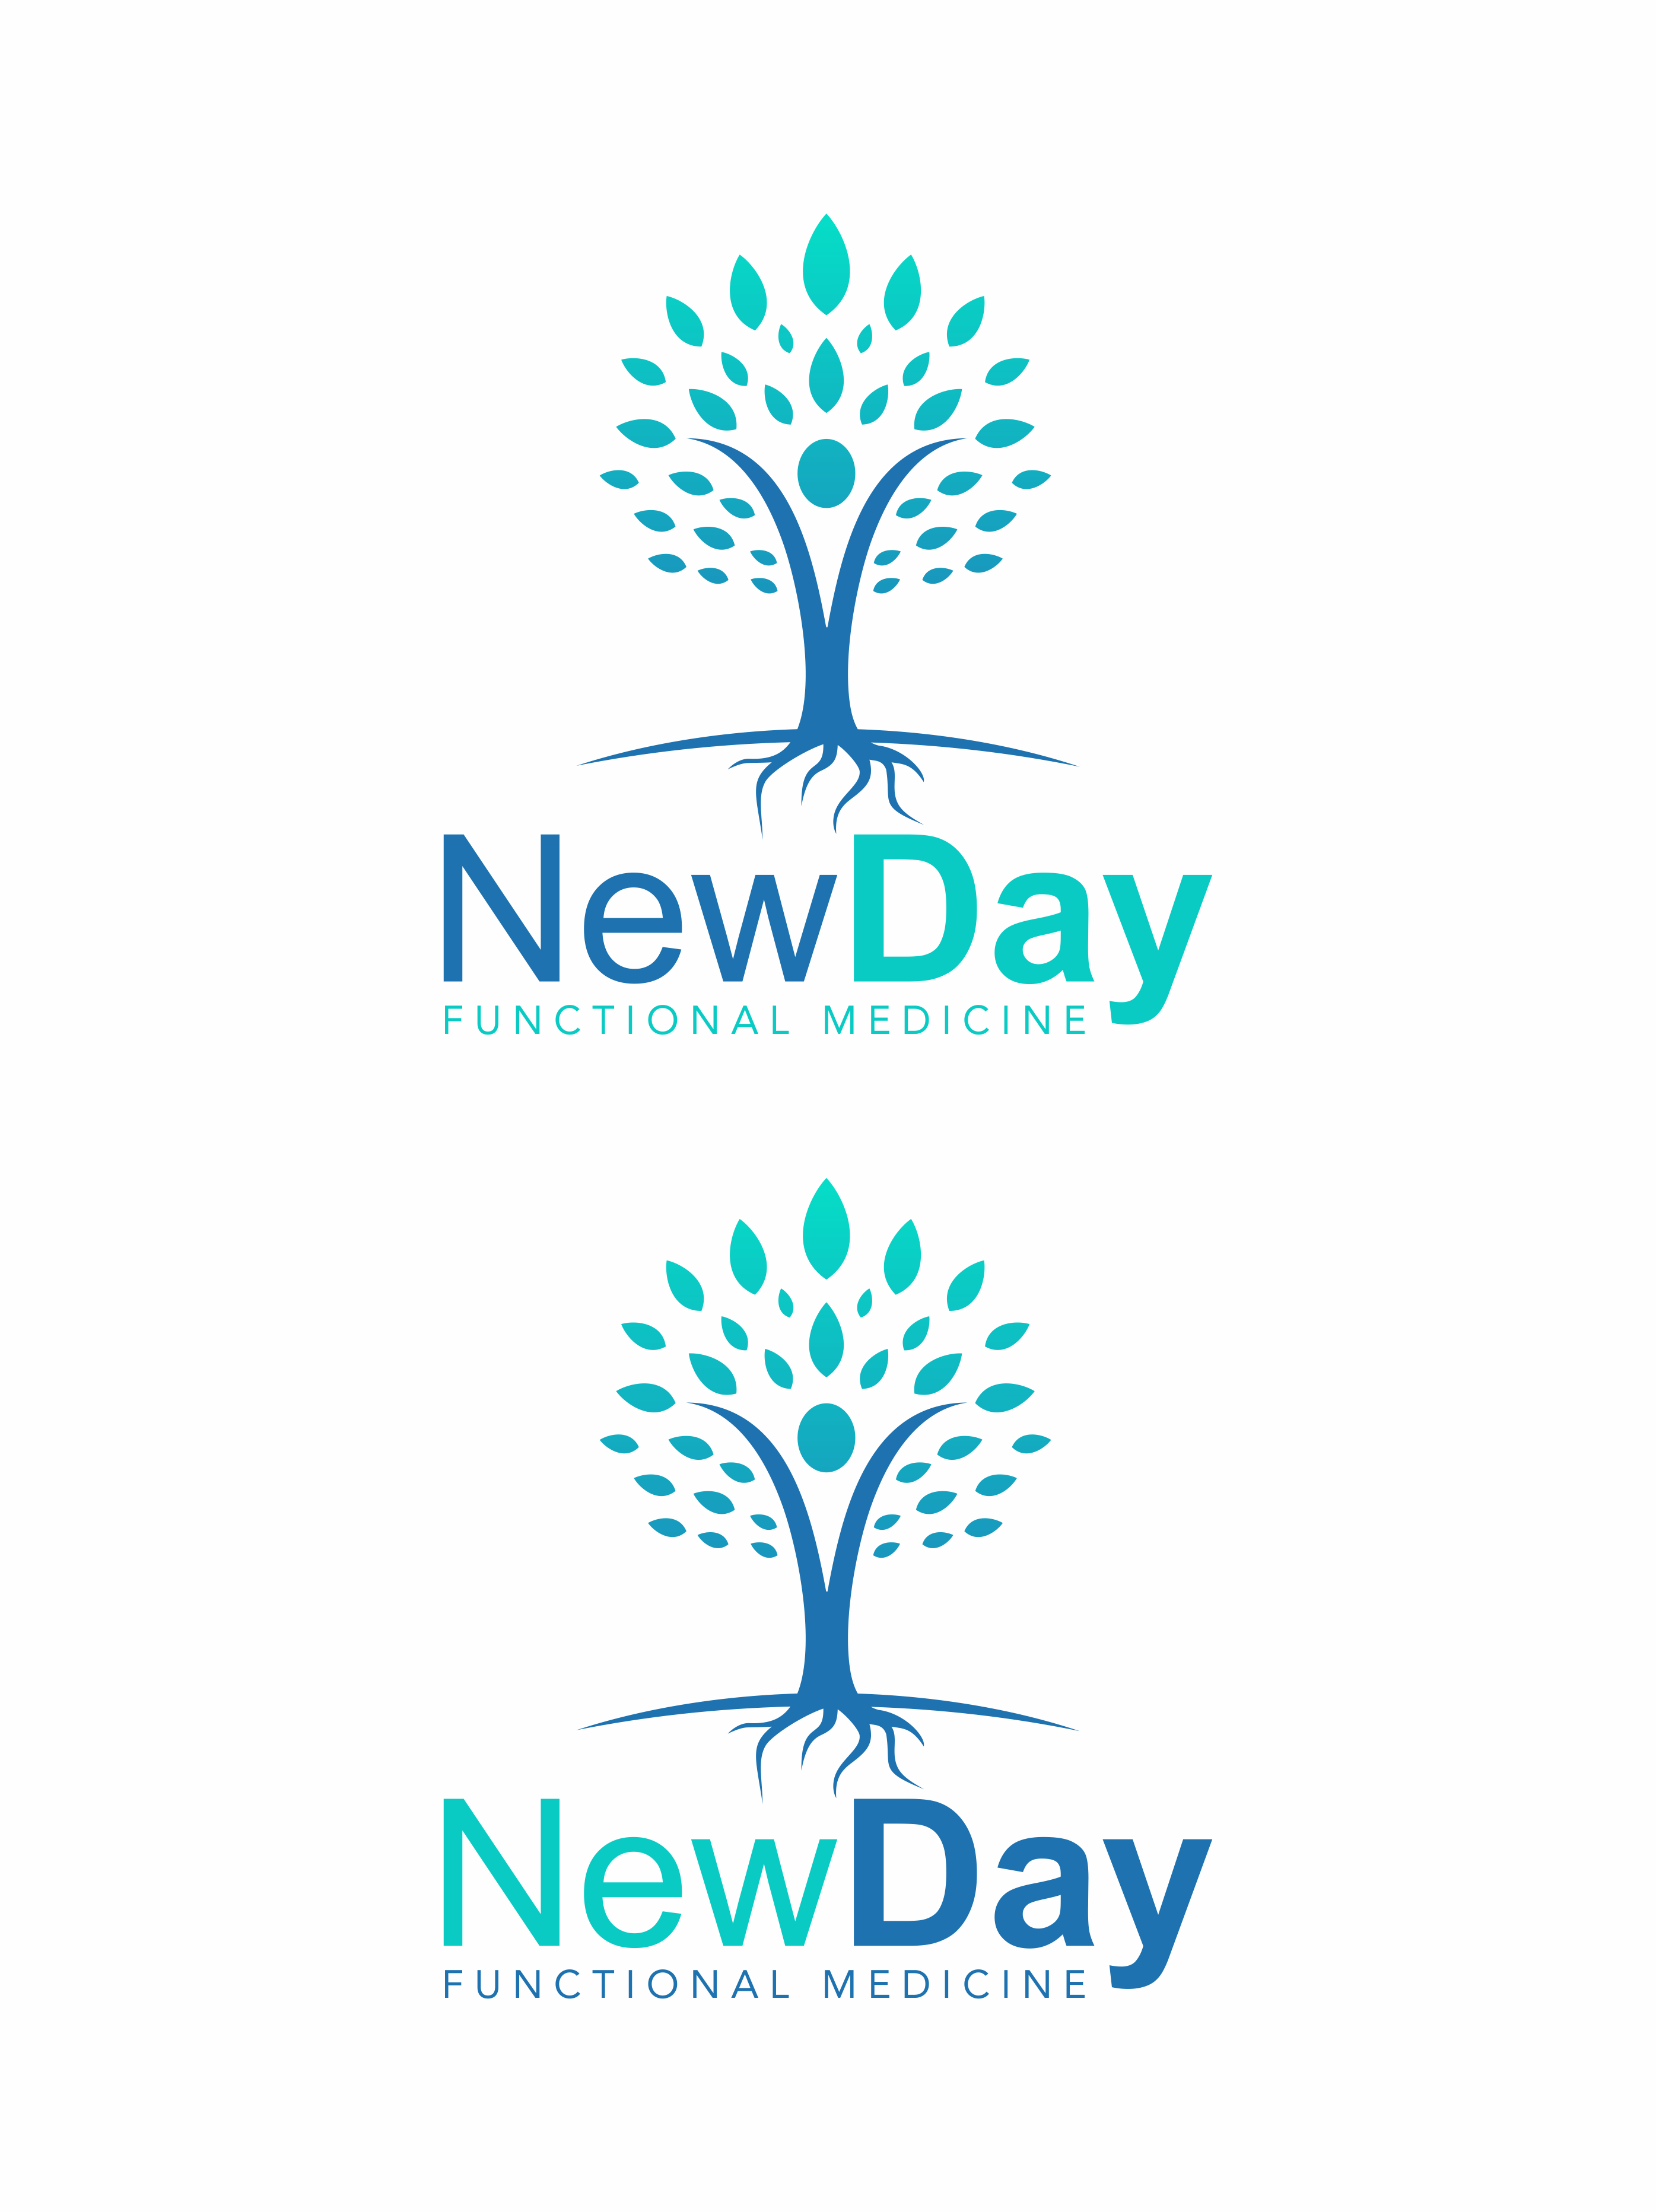 Design a logo for NewDay Functional Medicine